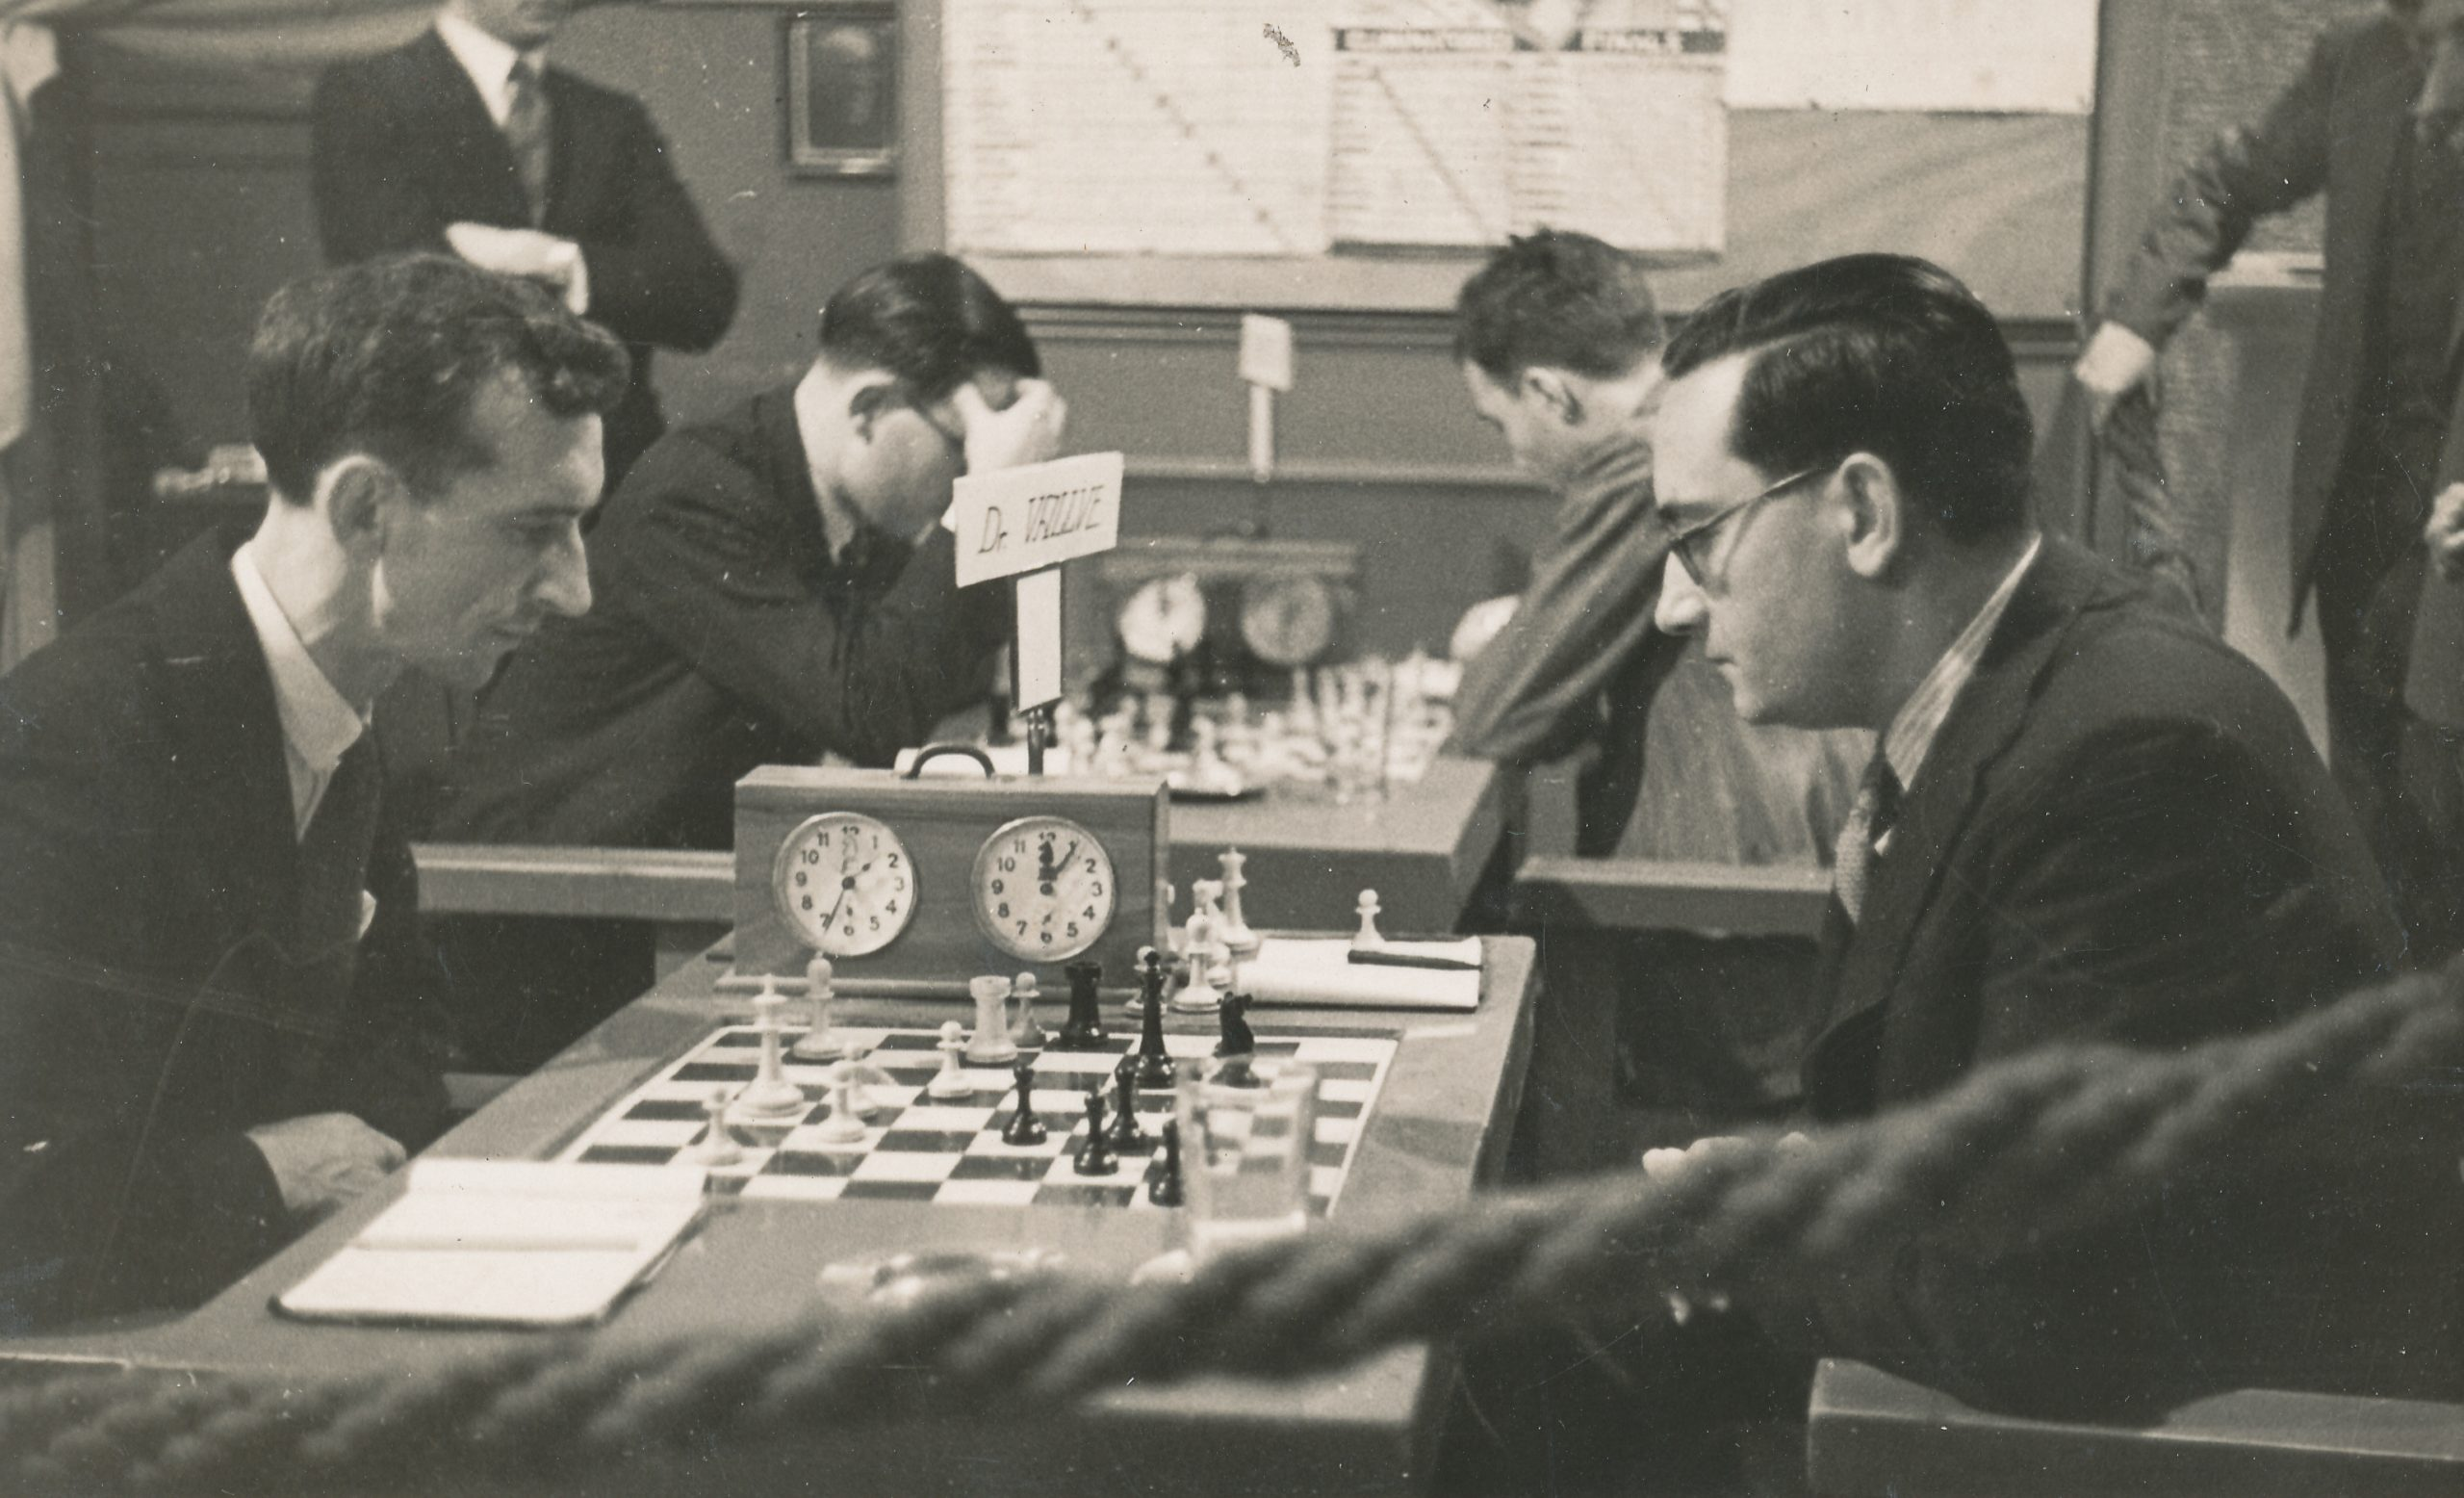 Brian Reilly playing Dr. Josep Vallve probably at Barcelona Chess Club in June 1935. Brian won in 61 moves.